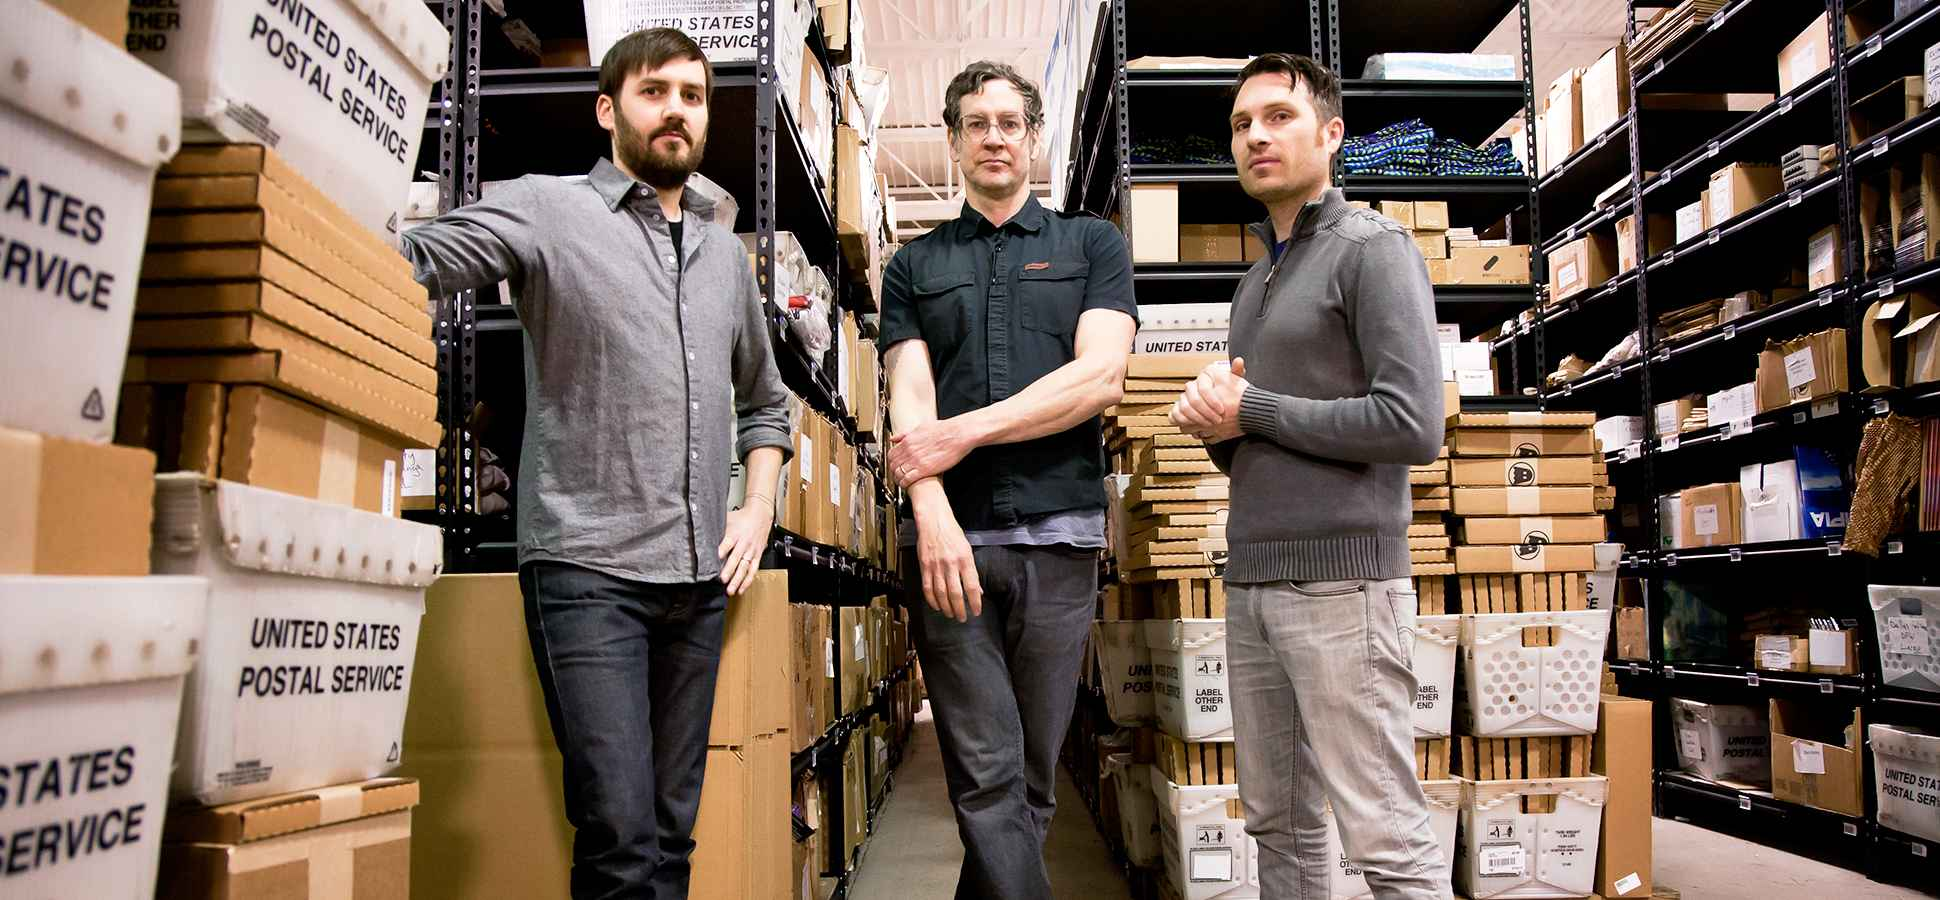 How an Indie Rock Band Helped Start a Multimillion-Dollar Company